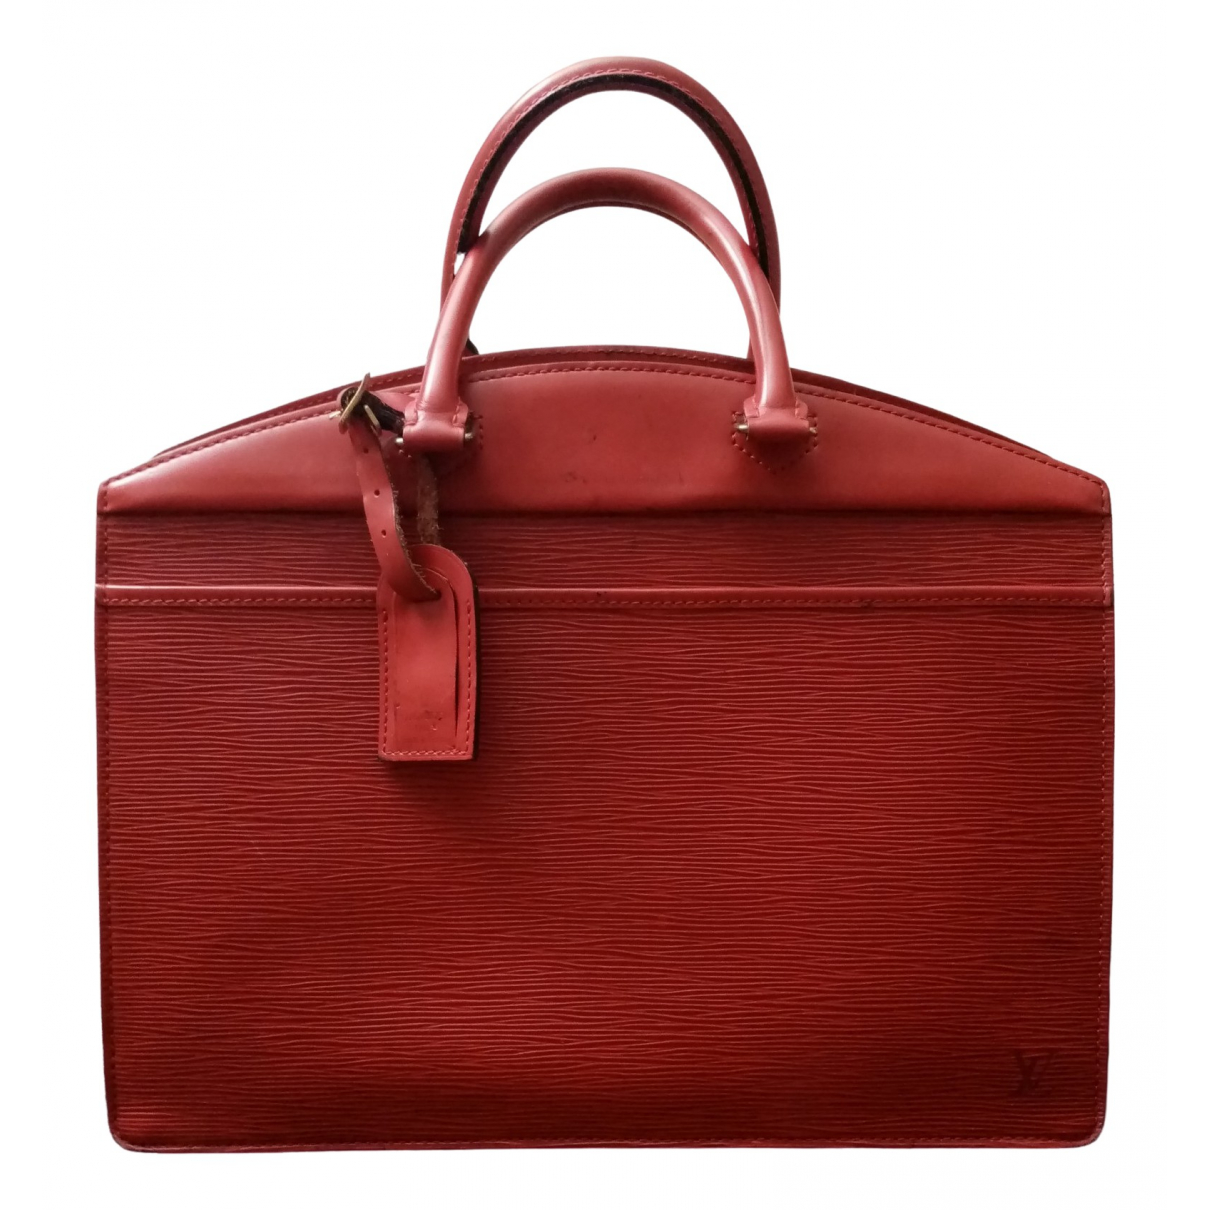 Louis Vuitton \N Red Leather Travel bag for Women \N